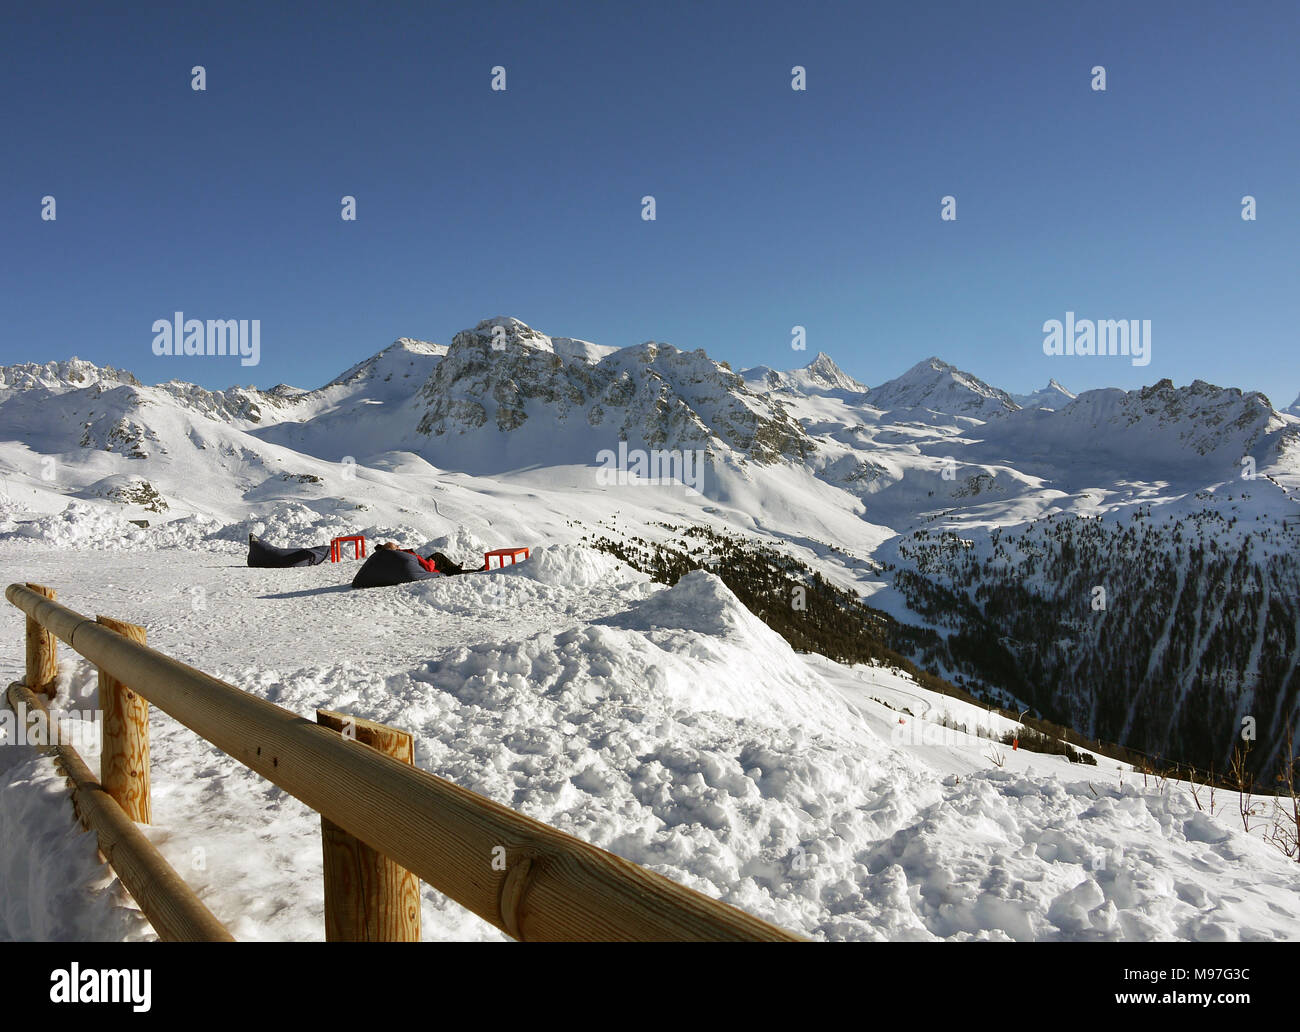 The swiss ski and linked resort of St Luc and Chandolin in the Valais region of Switzerland.  Looking towards the Matterhorn and Mont Cervin Stock Photo